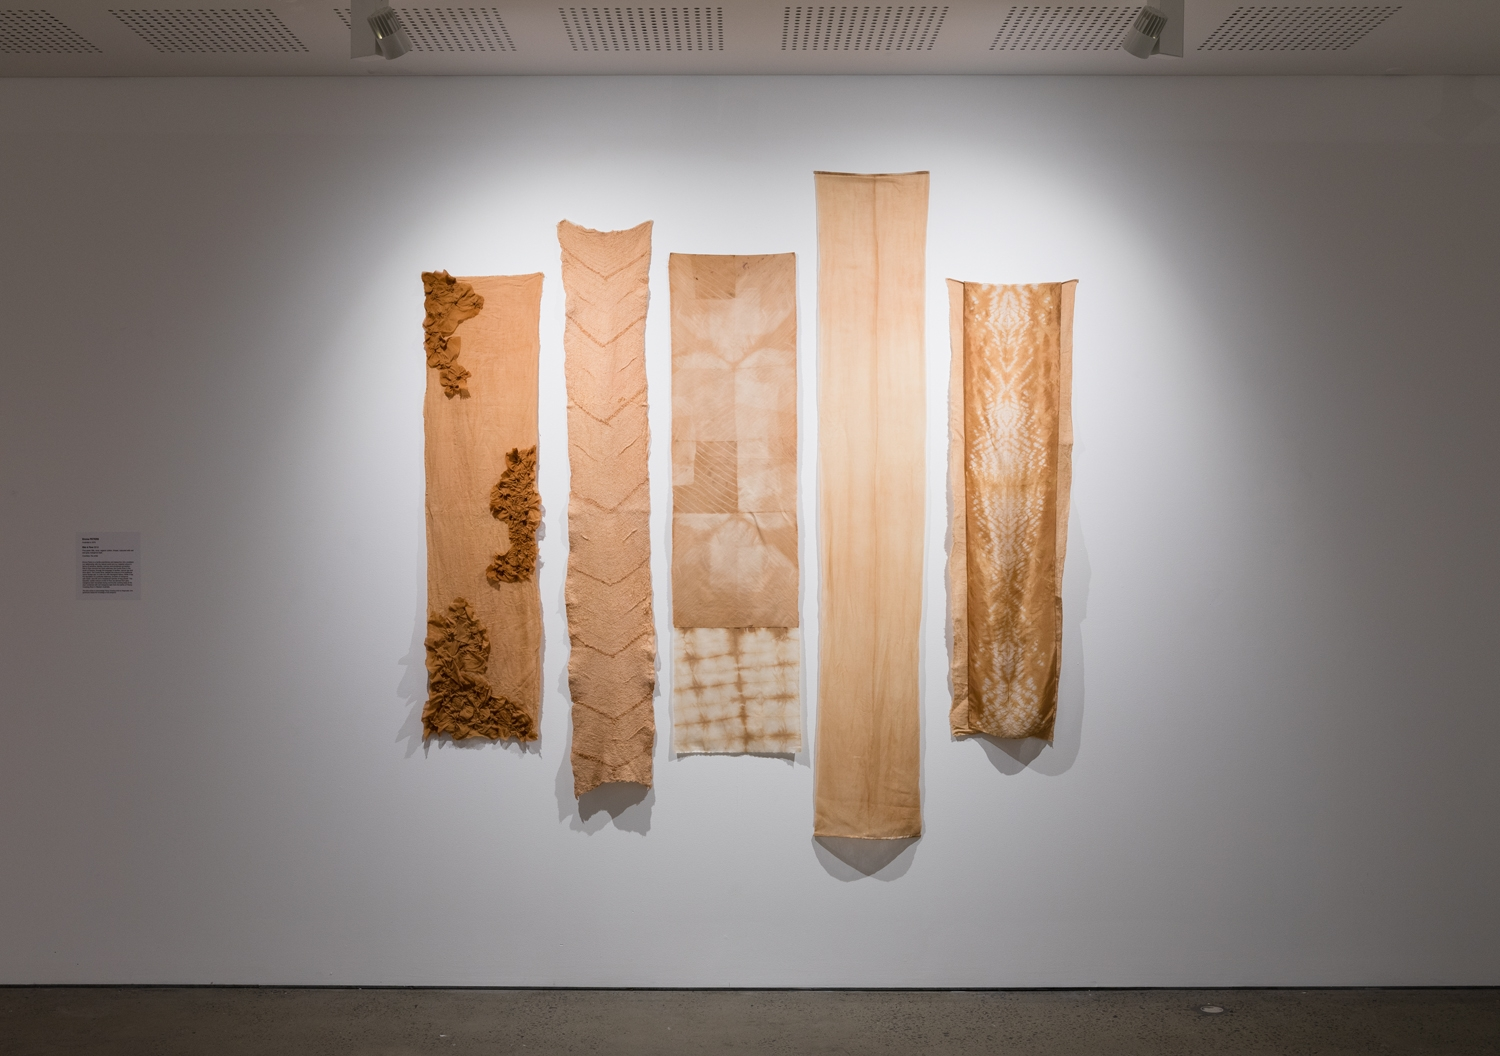 Five lengths of textiles hung on a wall, in warm apricots and earthy browns representing the Cooks River, by Emma Peters